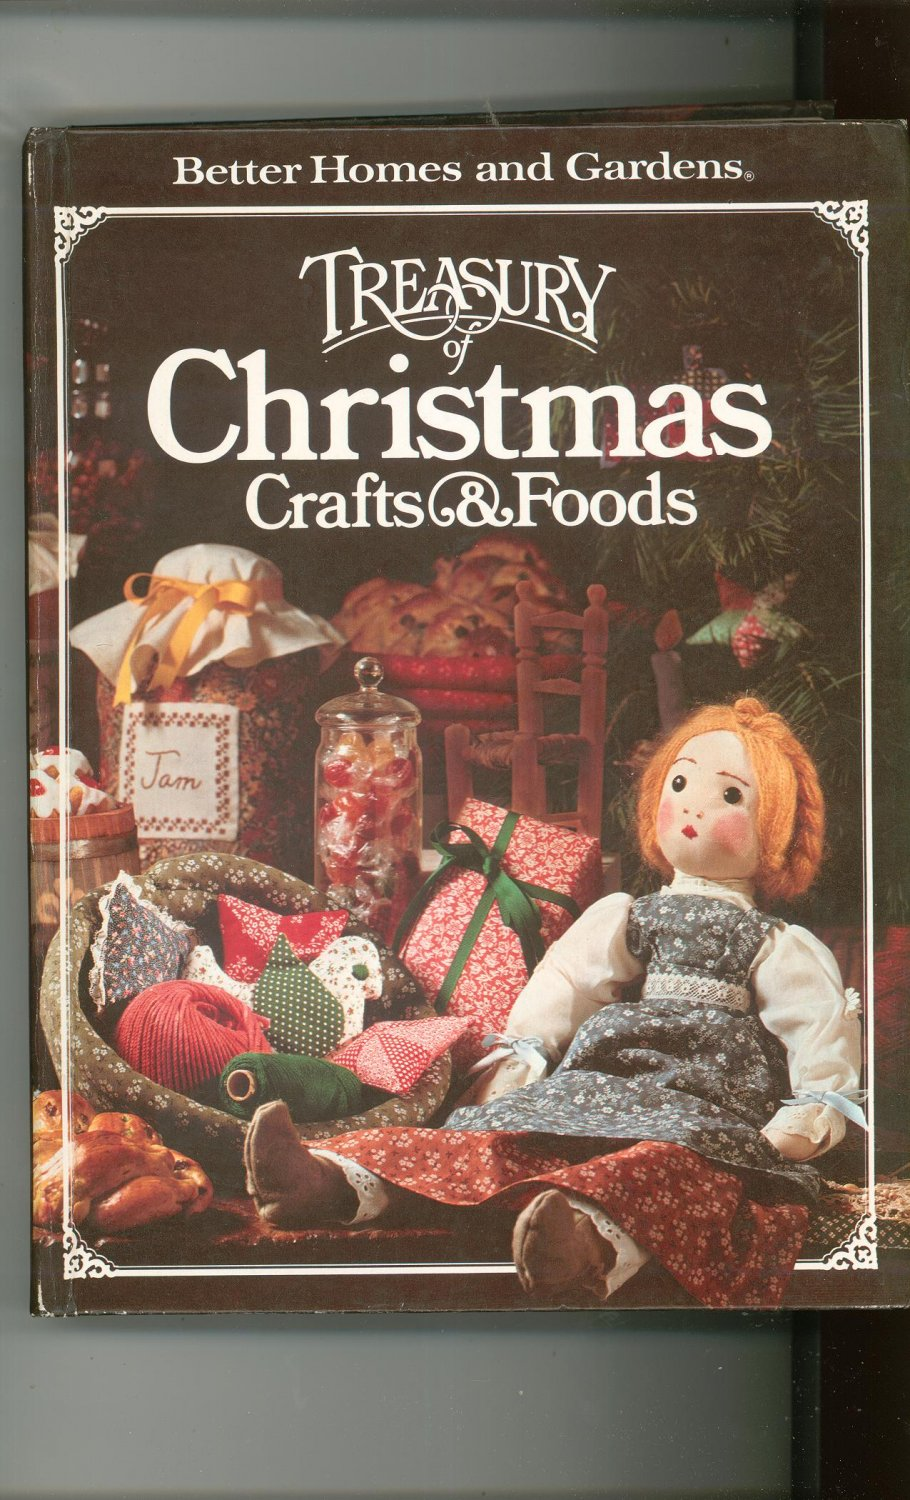 Better Homes And Gardens Treasury Of Christmas Crafts & Foods Cookbook Plus 0696000253 First Edition